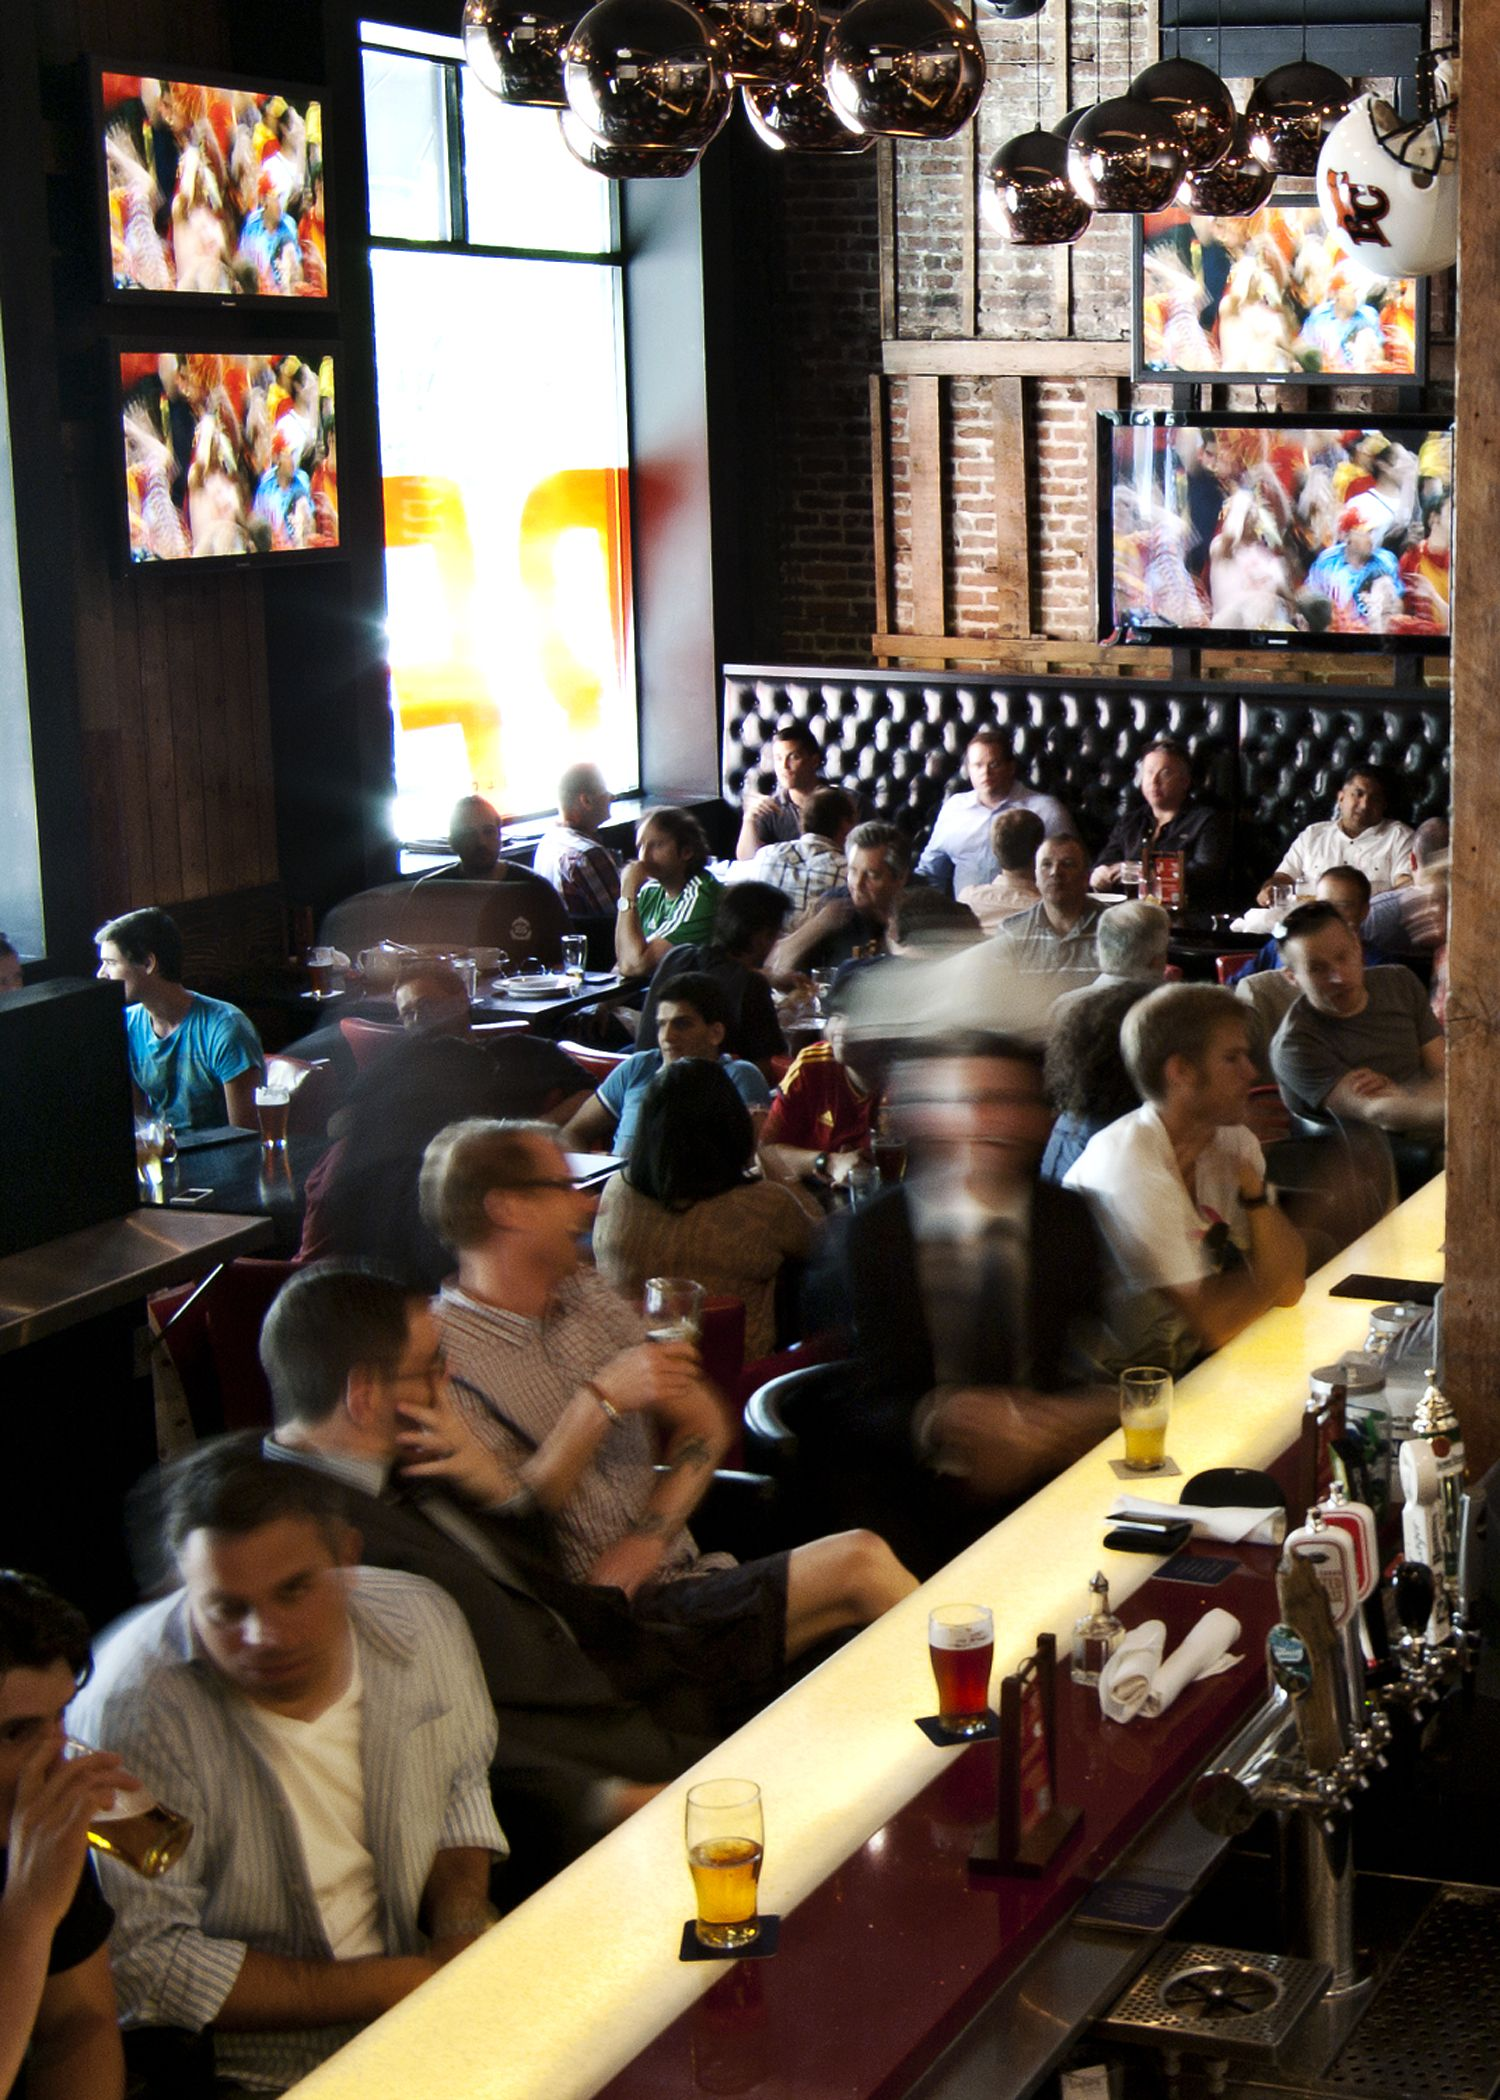 Red Card Game Day Red Card Sports Bar Eatery Sports Bar Sport Bar Design American Sports Bar